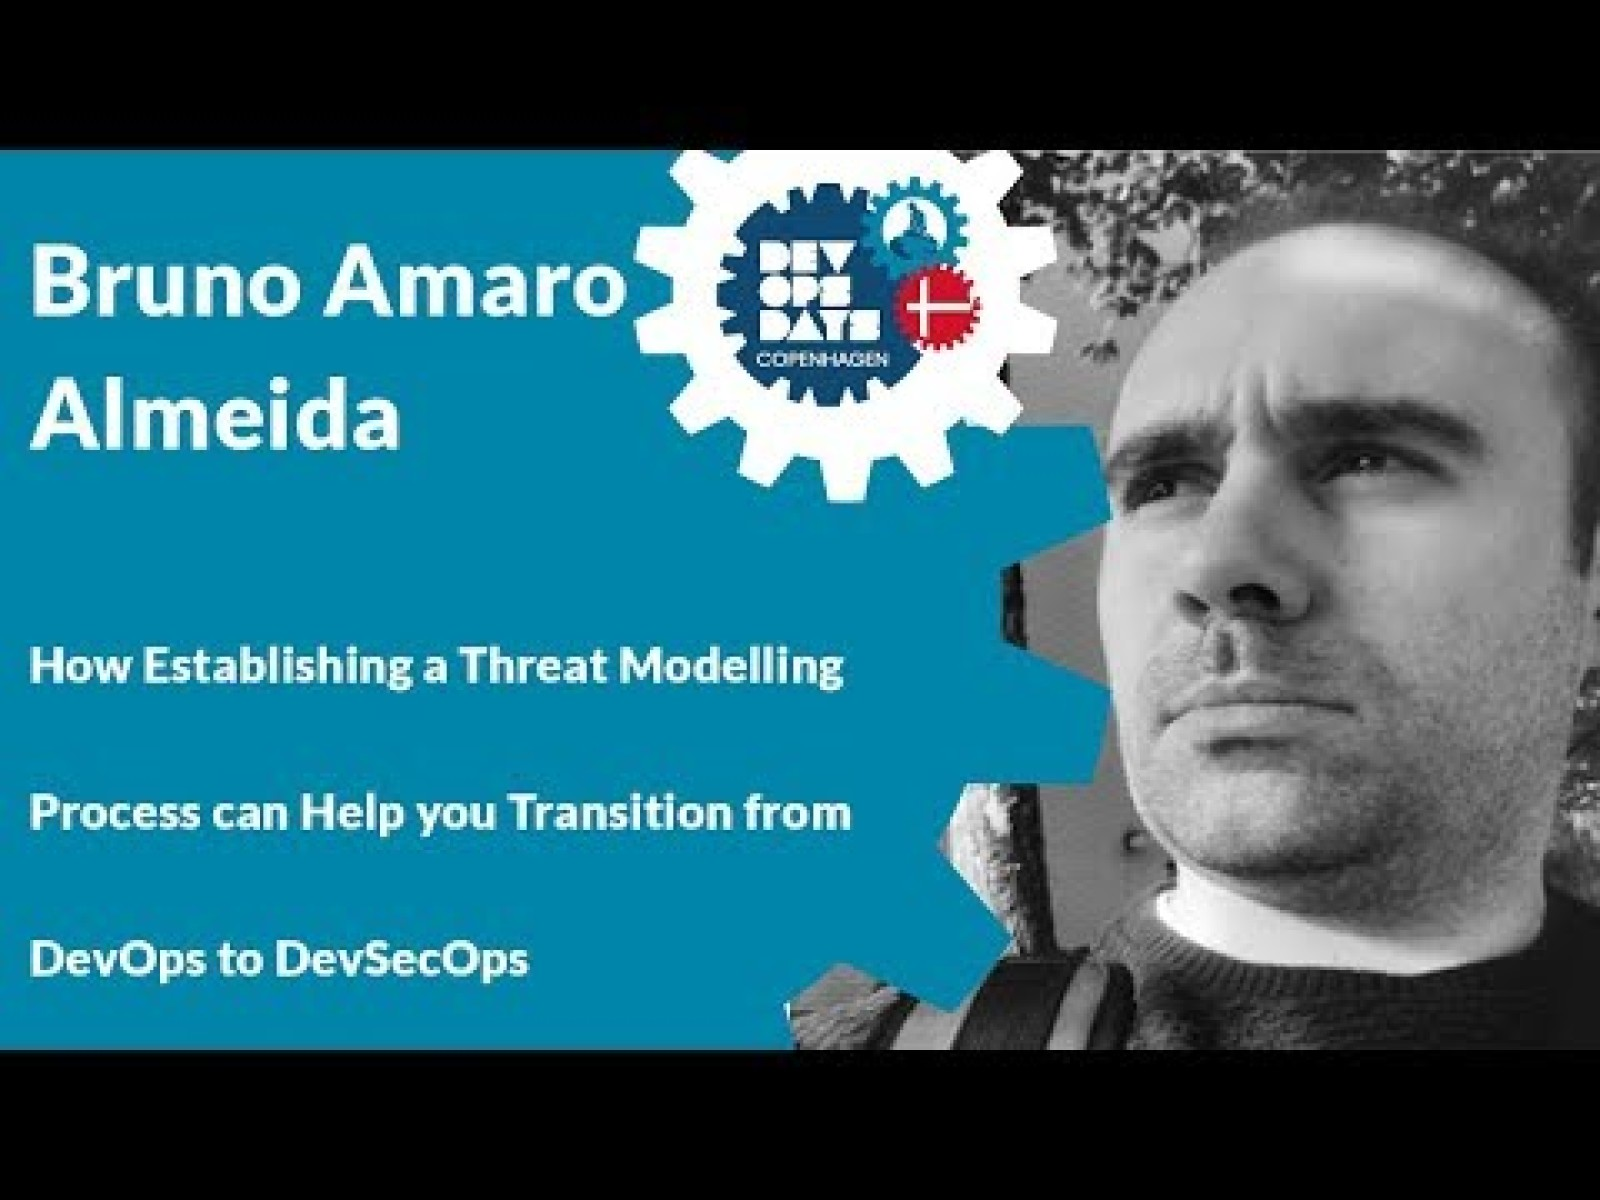 How establishing a Threat Modelling process can help you transition from DevOps to DevSecOps